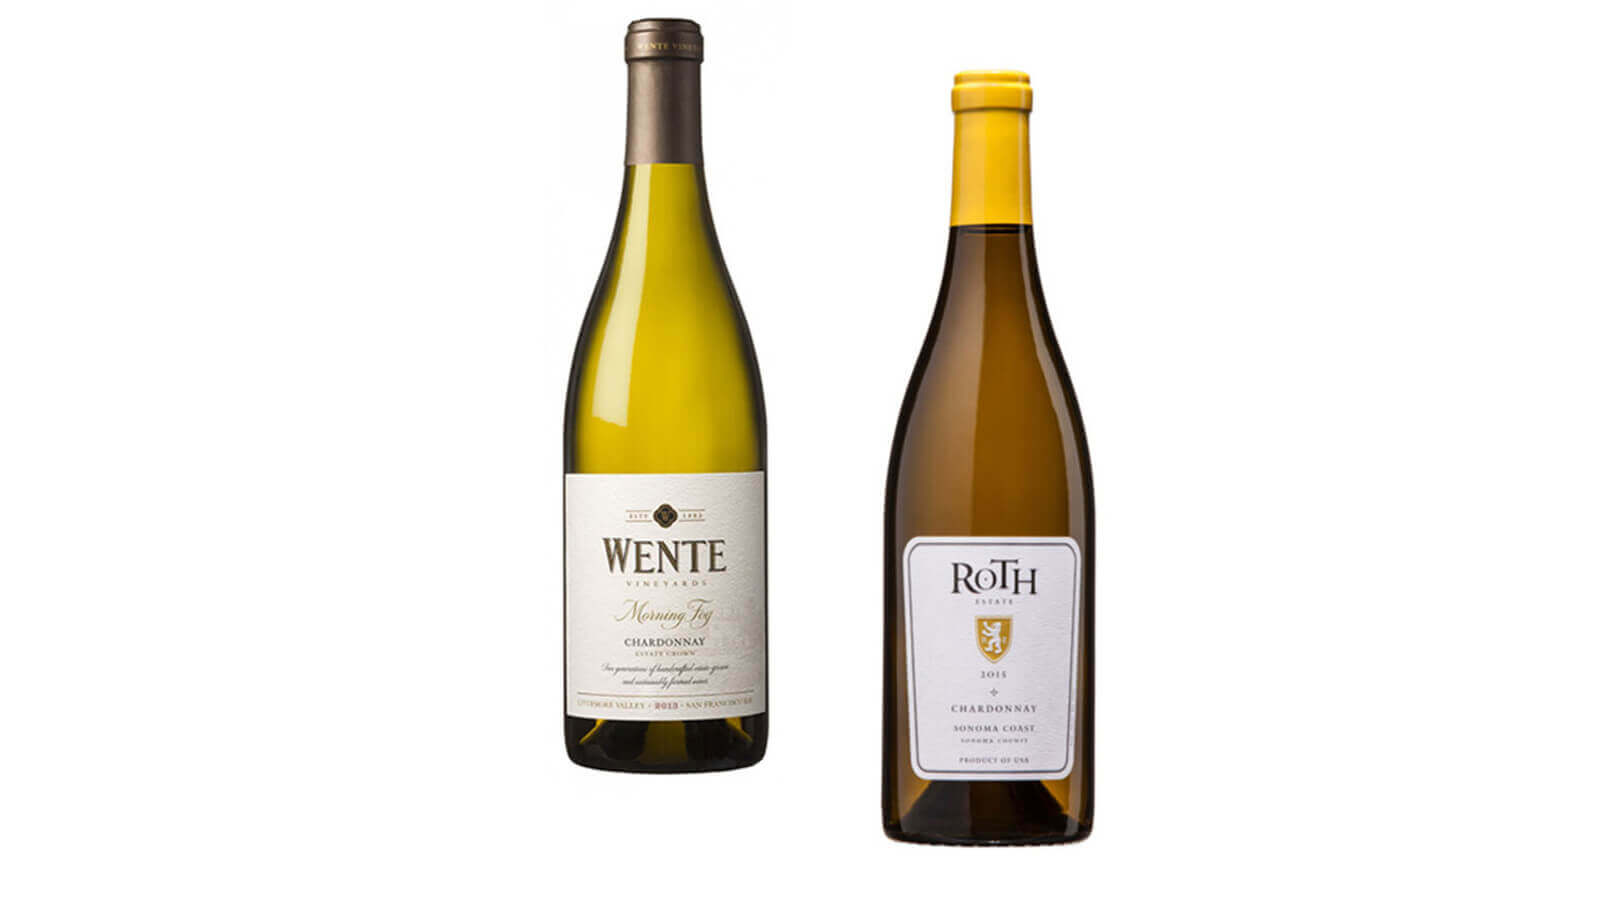 Wente Morning Fog Chardonnay and Roth Chardonnay